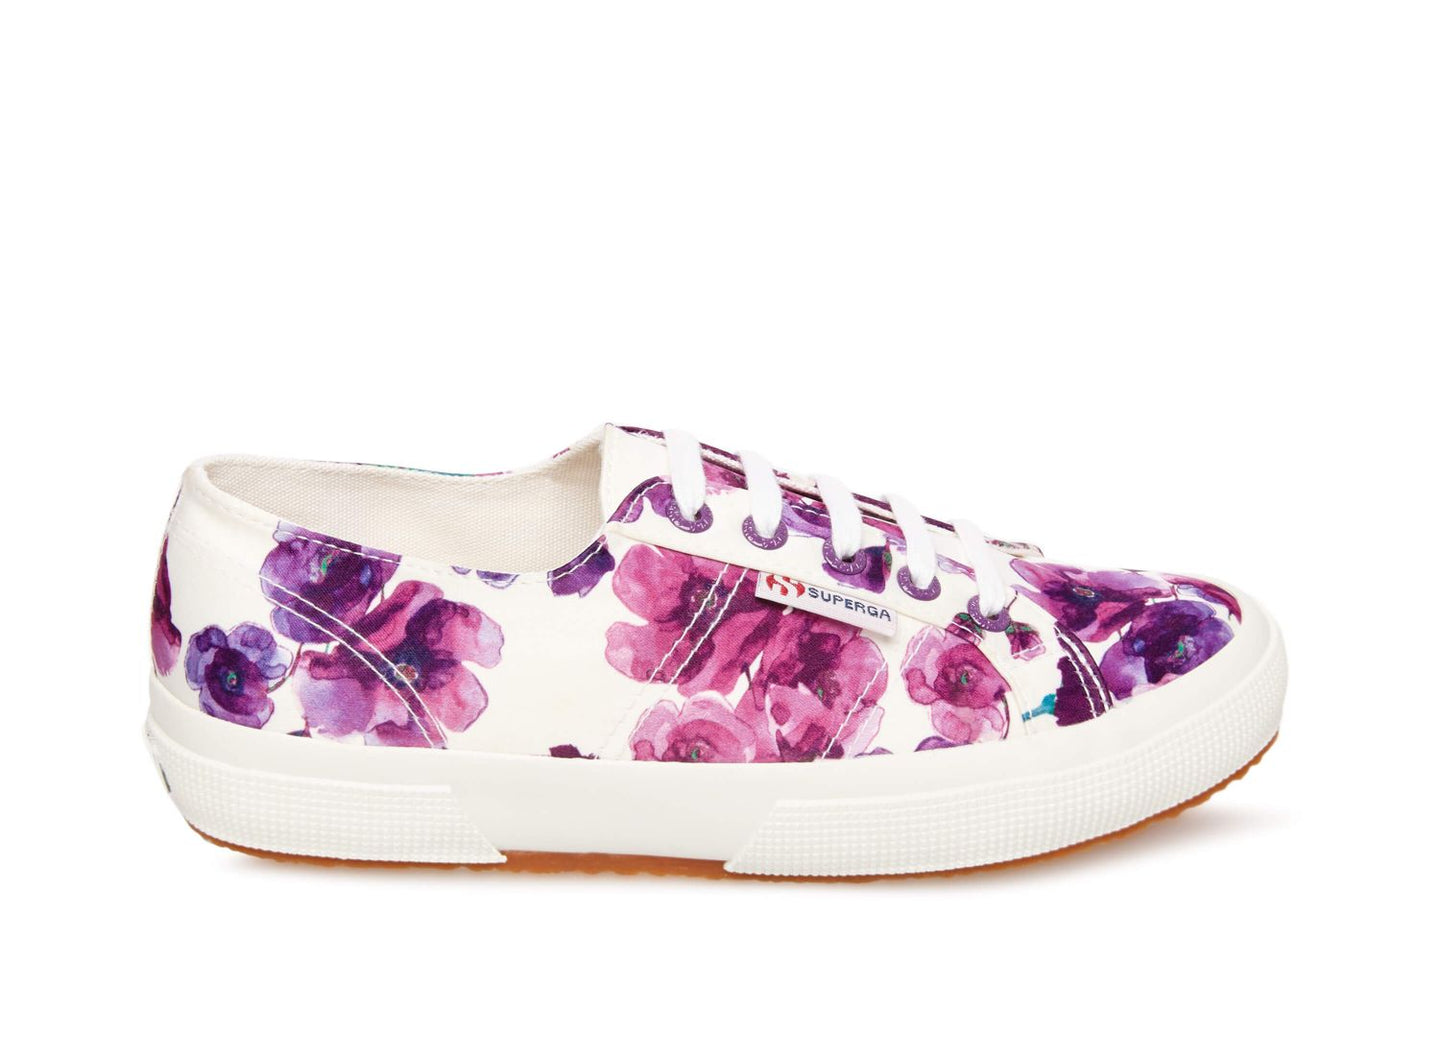 2750 FLORALMELULW PURPLE MULTI -